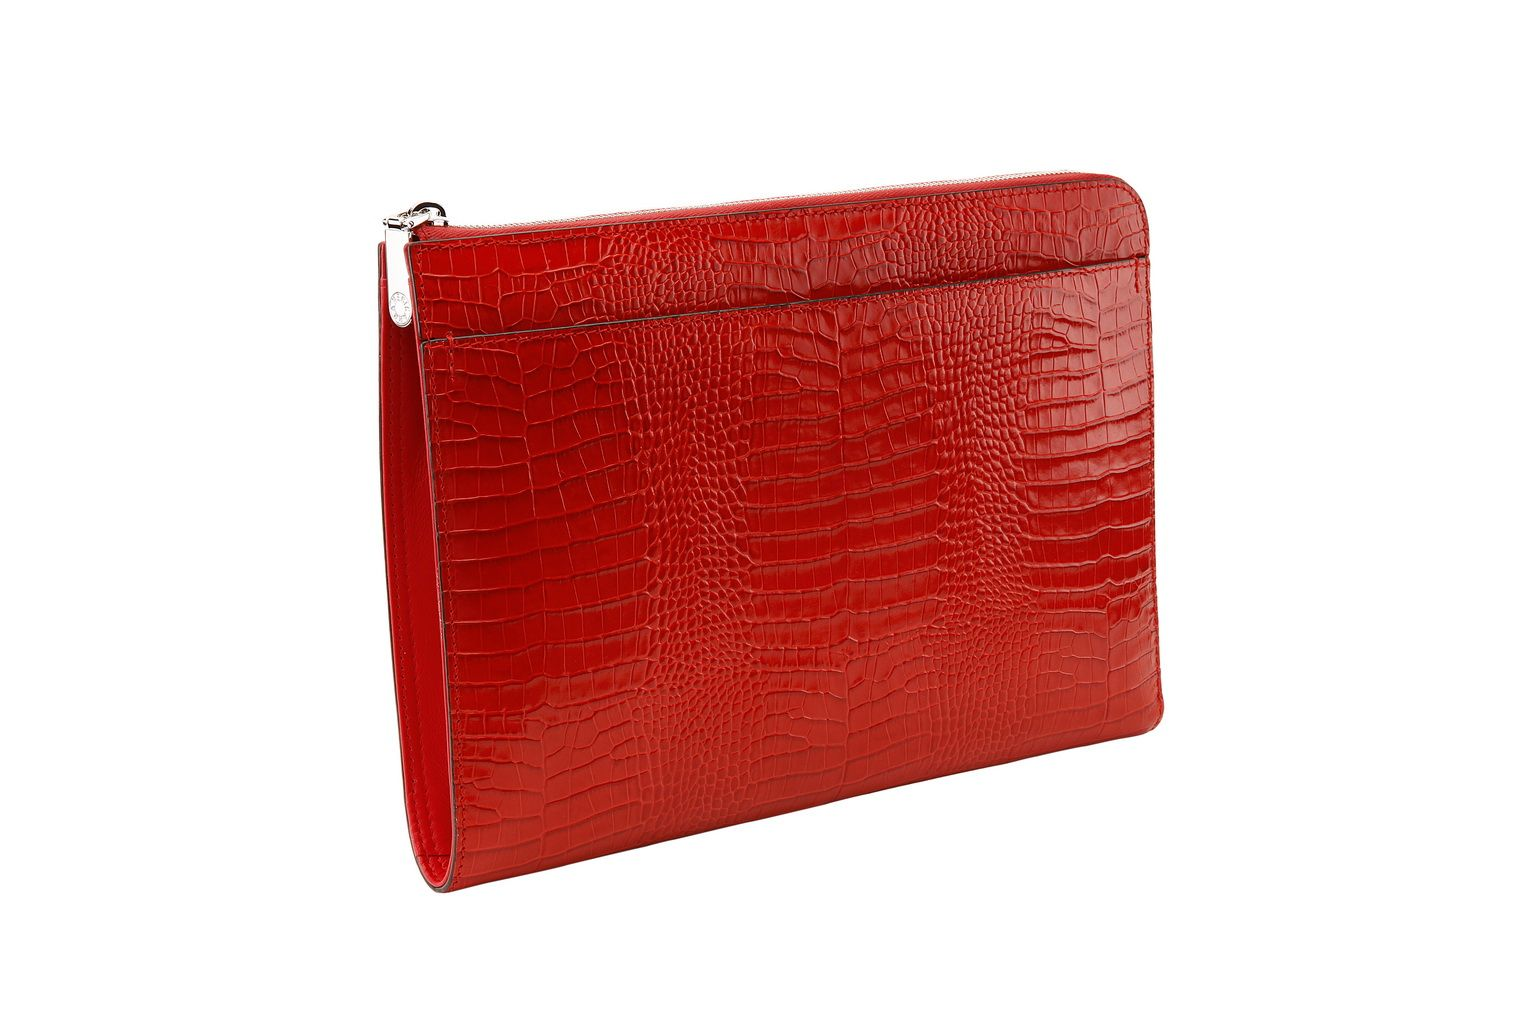 RED SNAKE-EFFECT LEATHER FOLIO